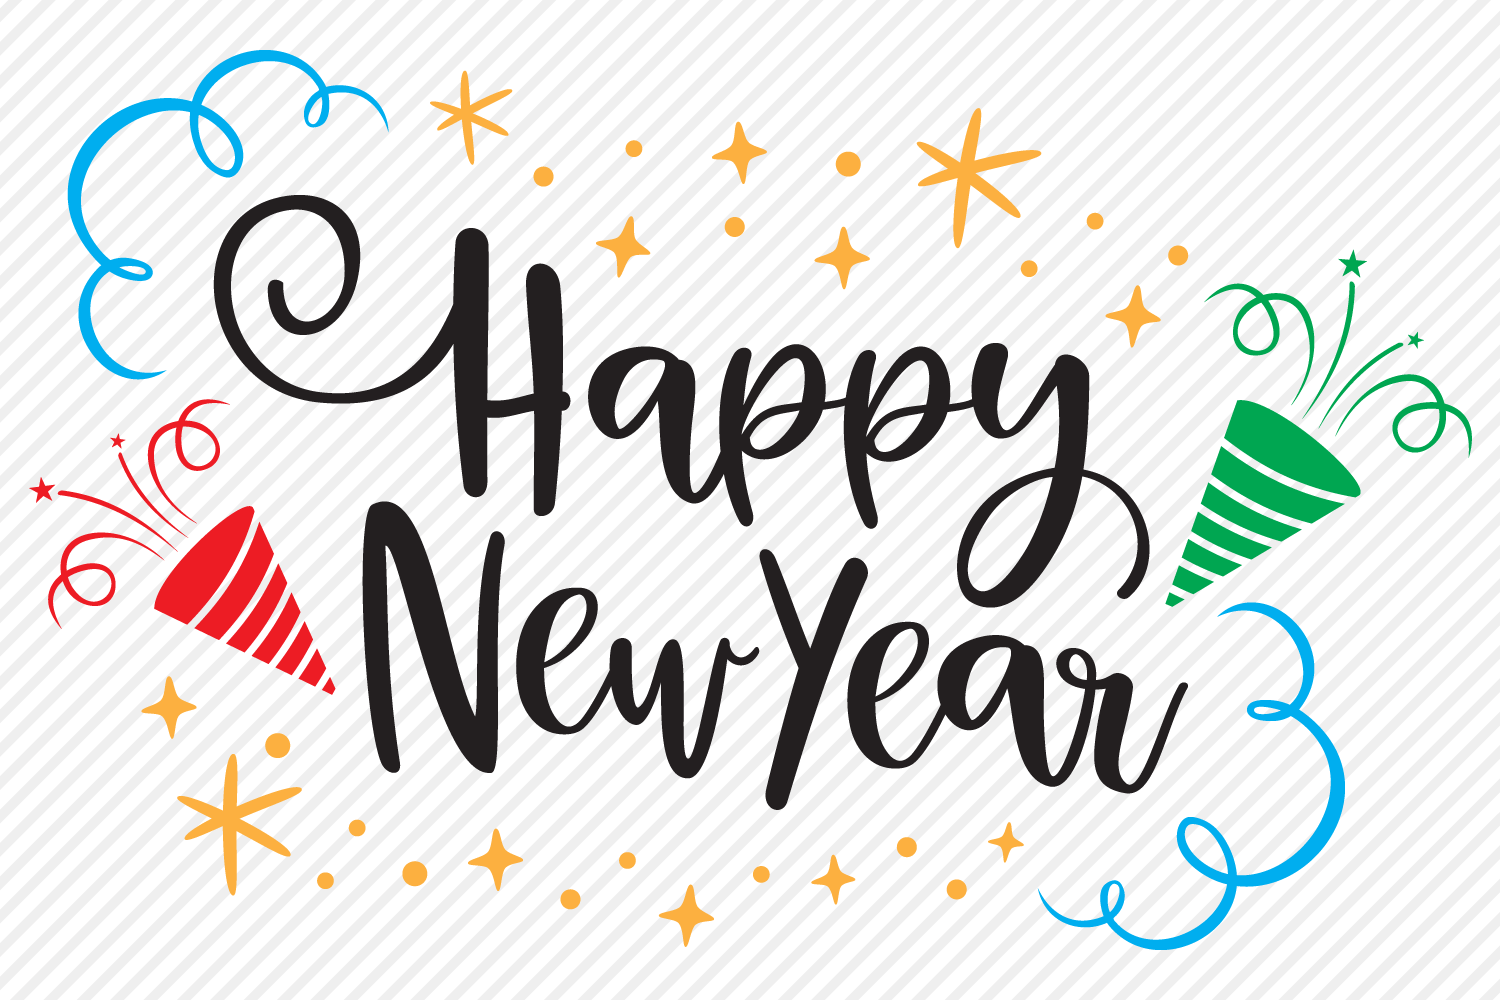 Happy New Year SVG, Cut File, Happy New Year's Shirt Design example image 2